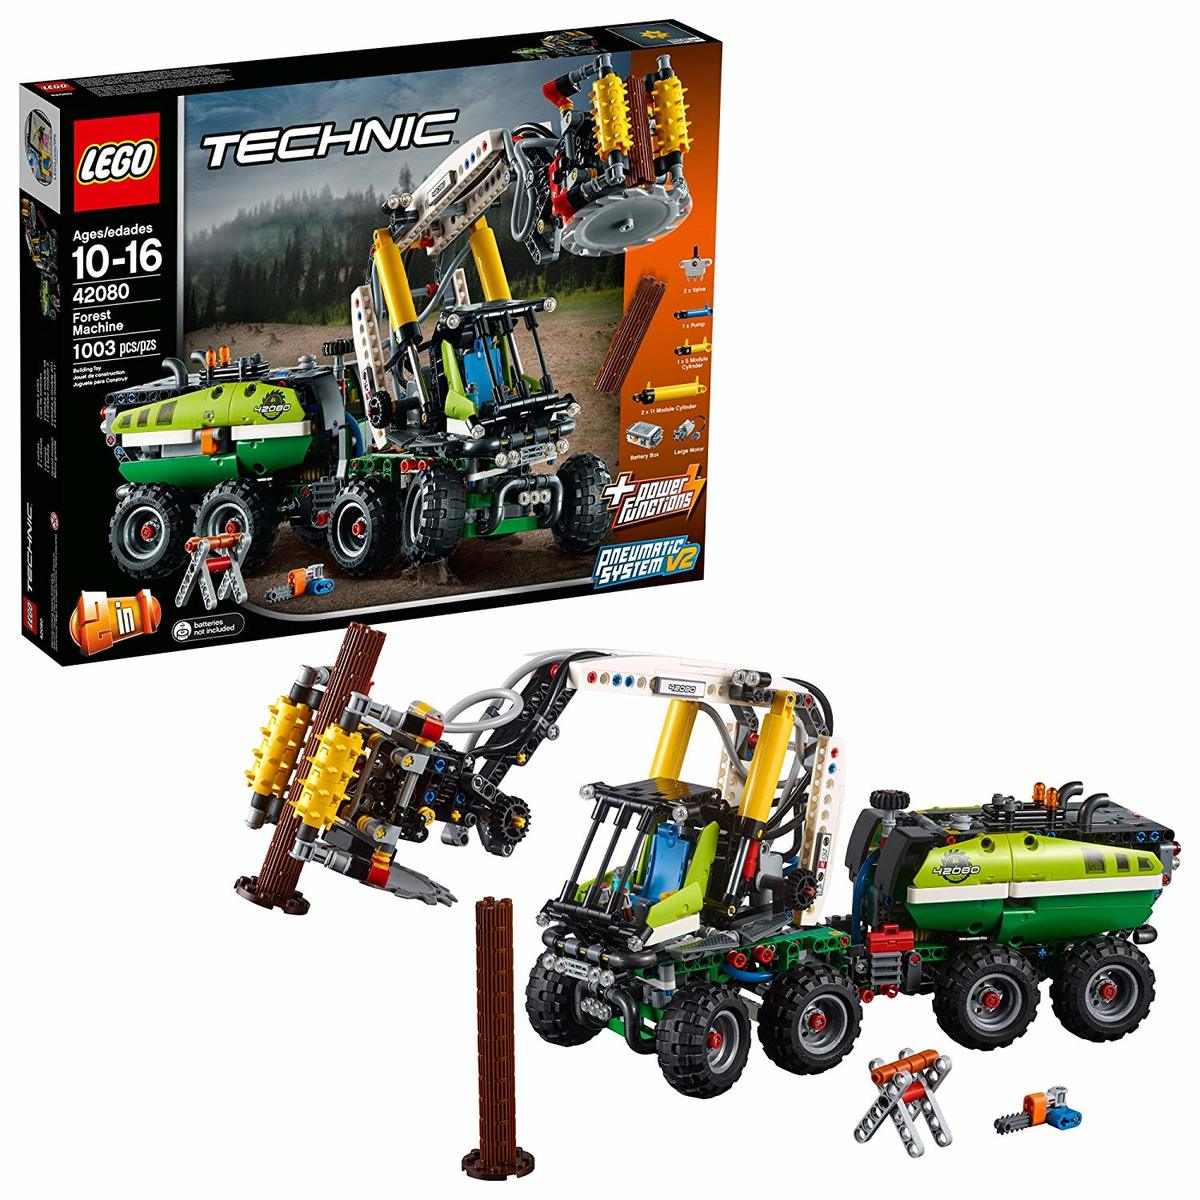 42080 Mechanical Group Series Forest Machine